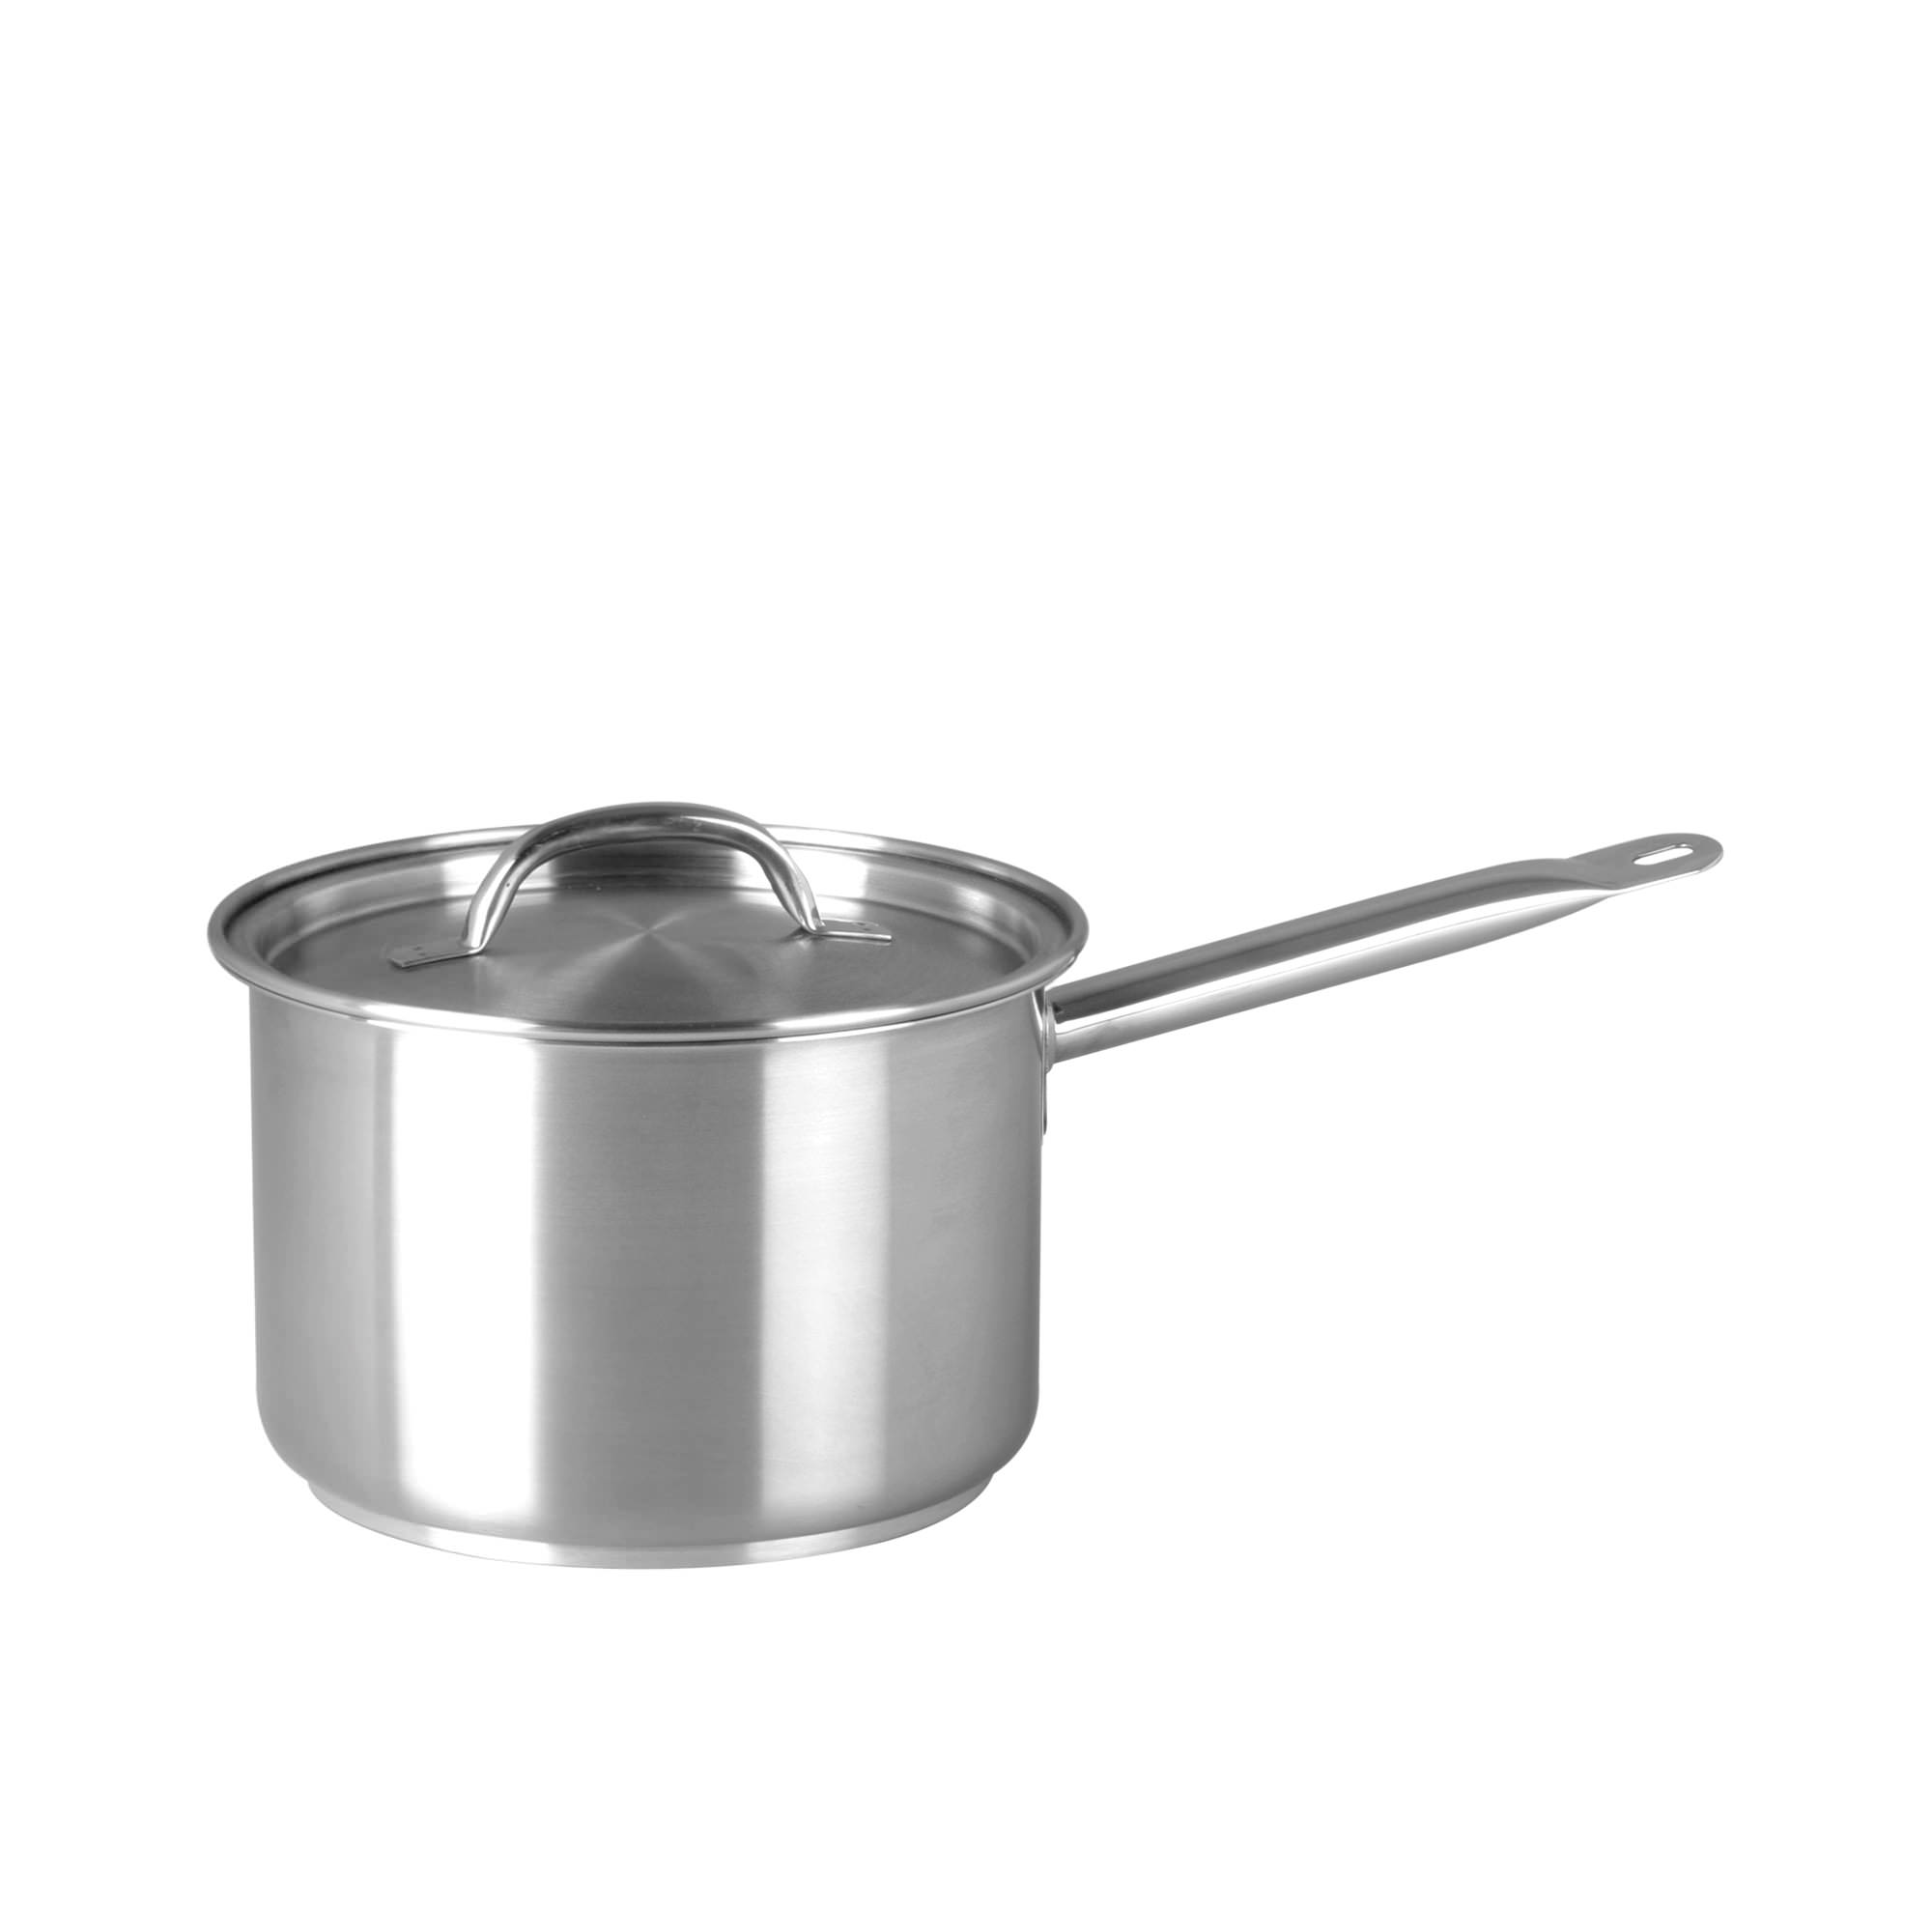 Chef Inox Elite Stainless Steel Saucepan 16cm - 2.2L